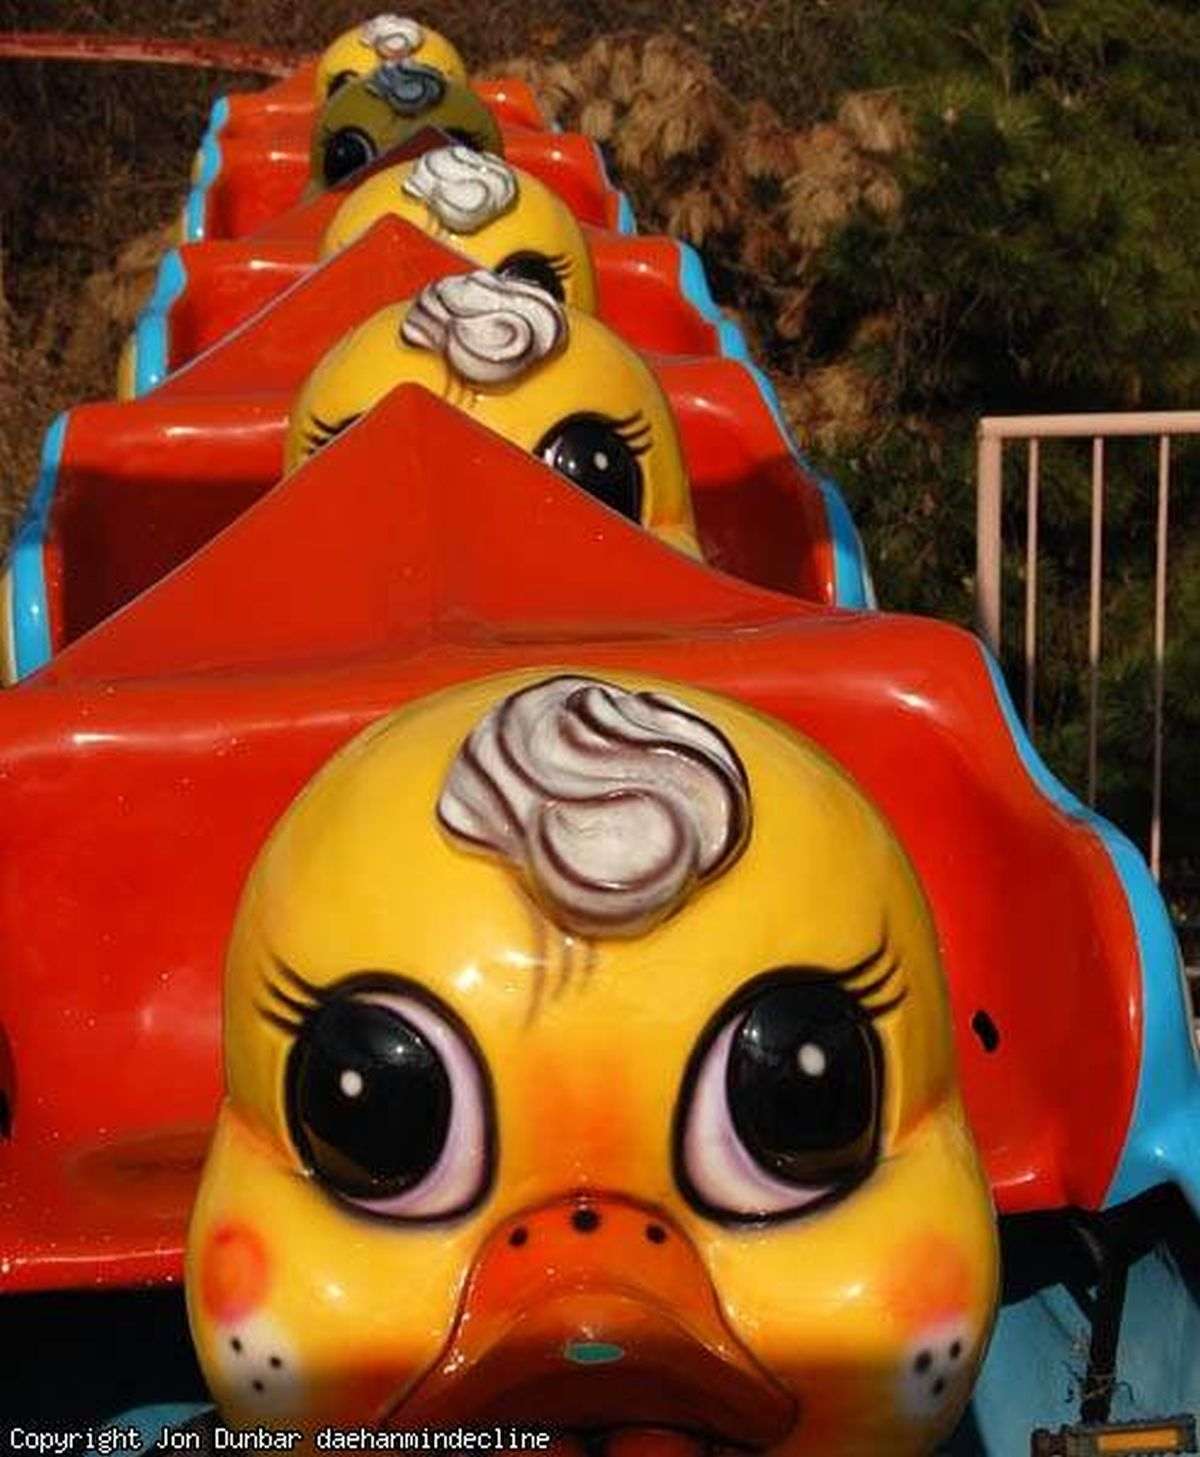 Okpo Land: The Most Horrible Amusement Park In Korea